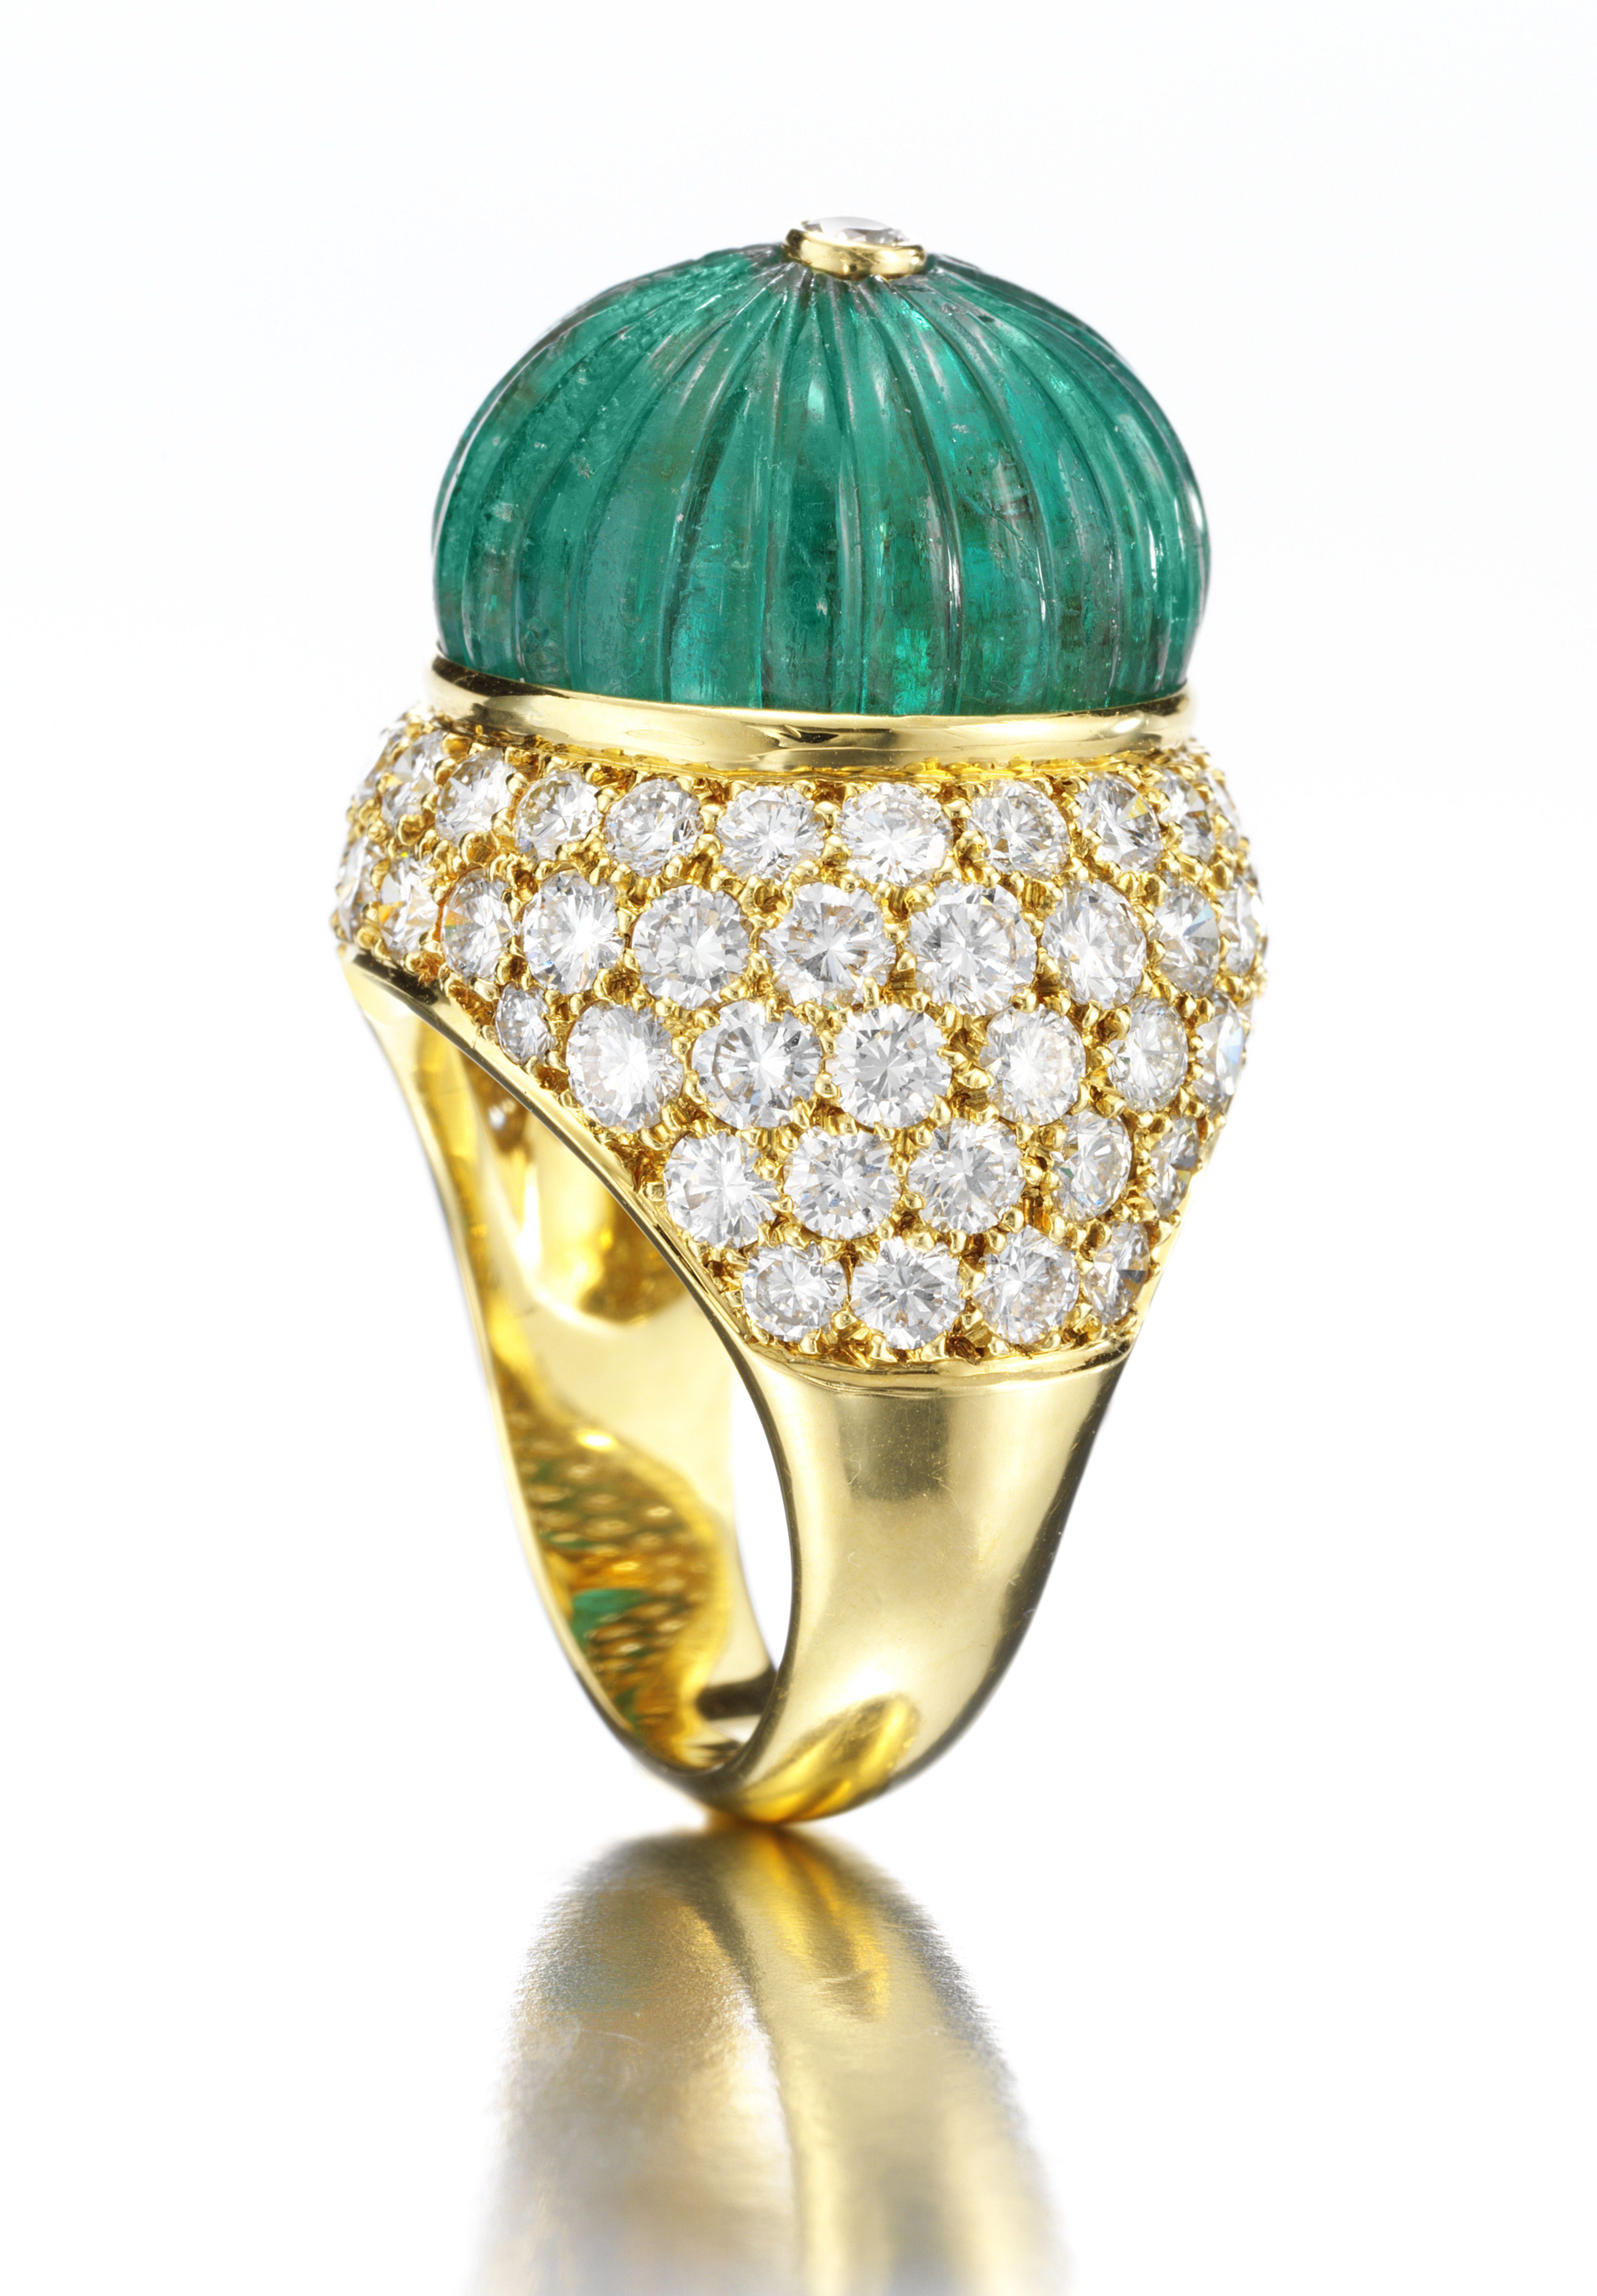 Van cleef amp arpels vca 18k yellow gold ruby cabochon amp diamond - Van Cleef Arpels A Carved Fluted Emerald Bead Diamond Gold Bomb Ring Signed Van Cleef Arpels And Numbered N